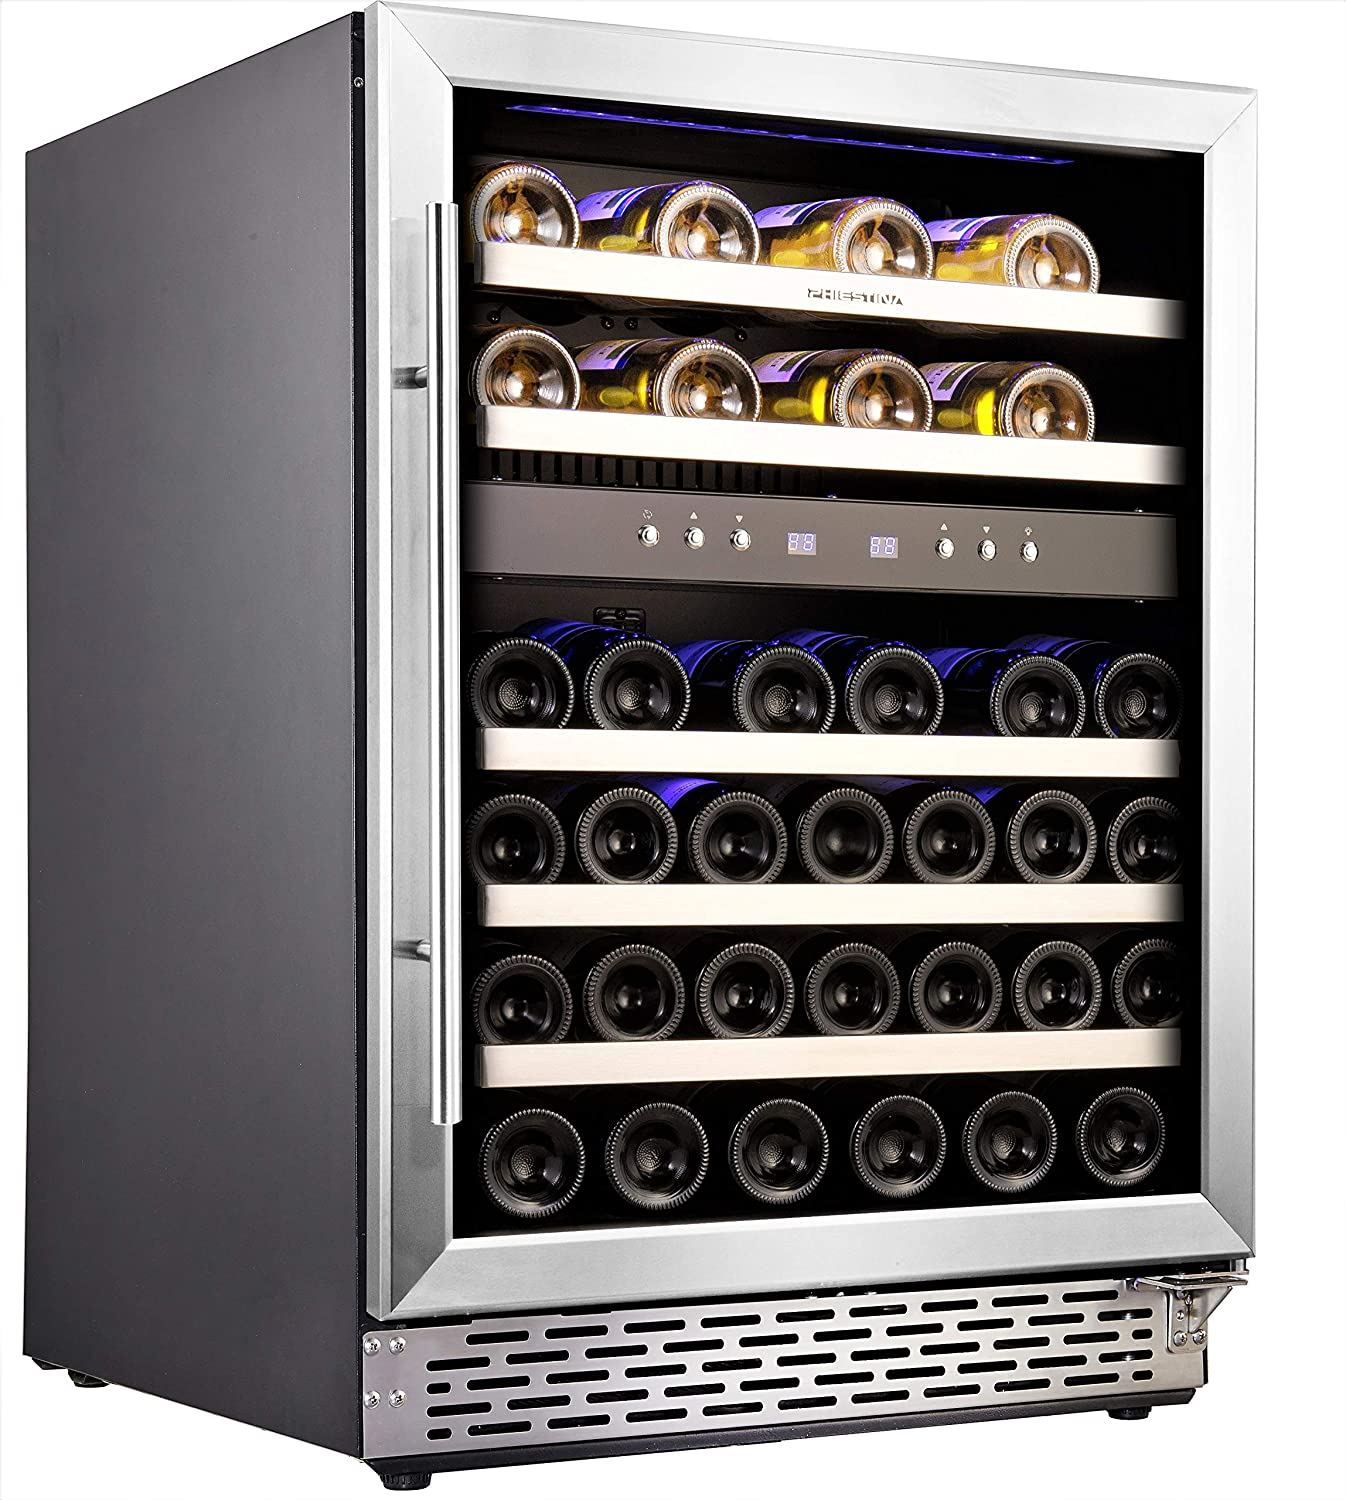 10. Phiestina 46 Bottle Wine Cooler Refrigerator